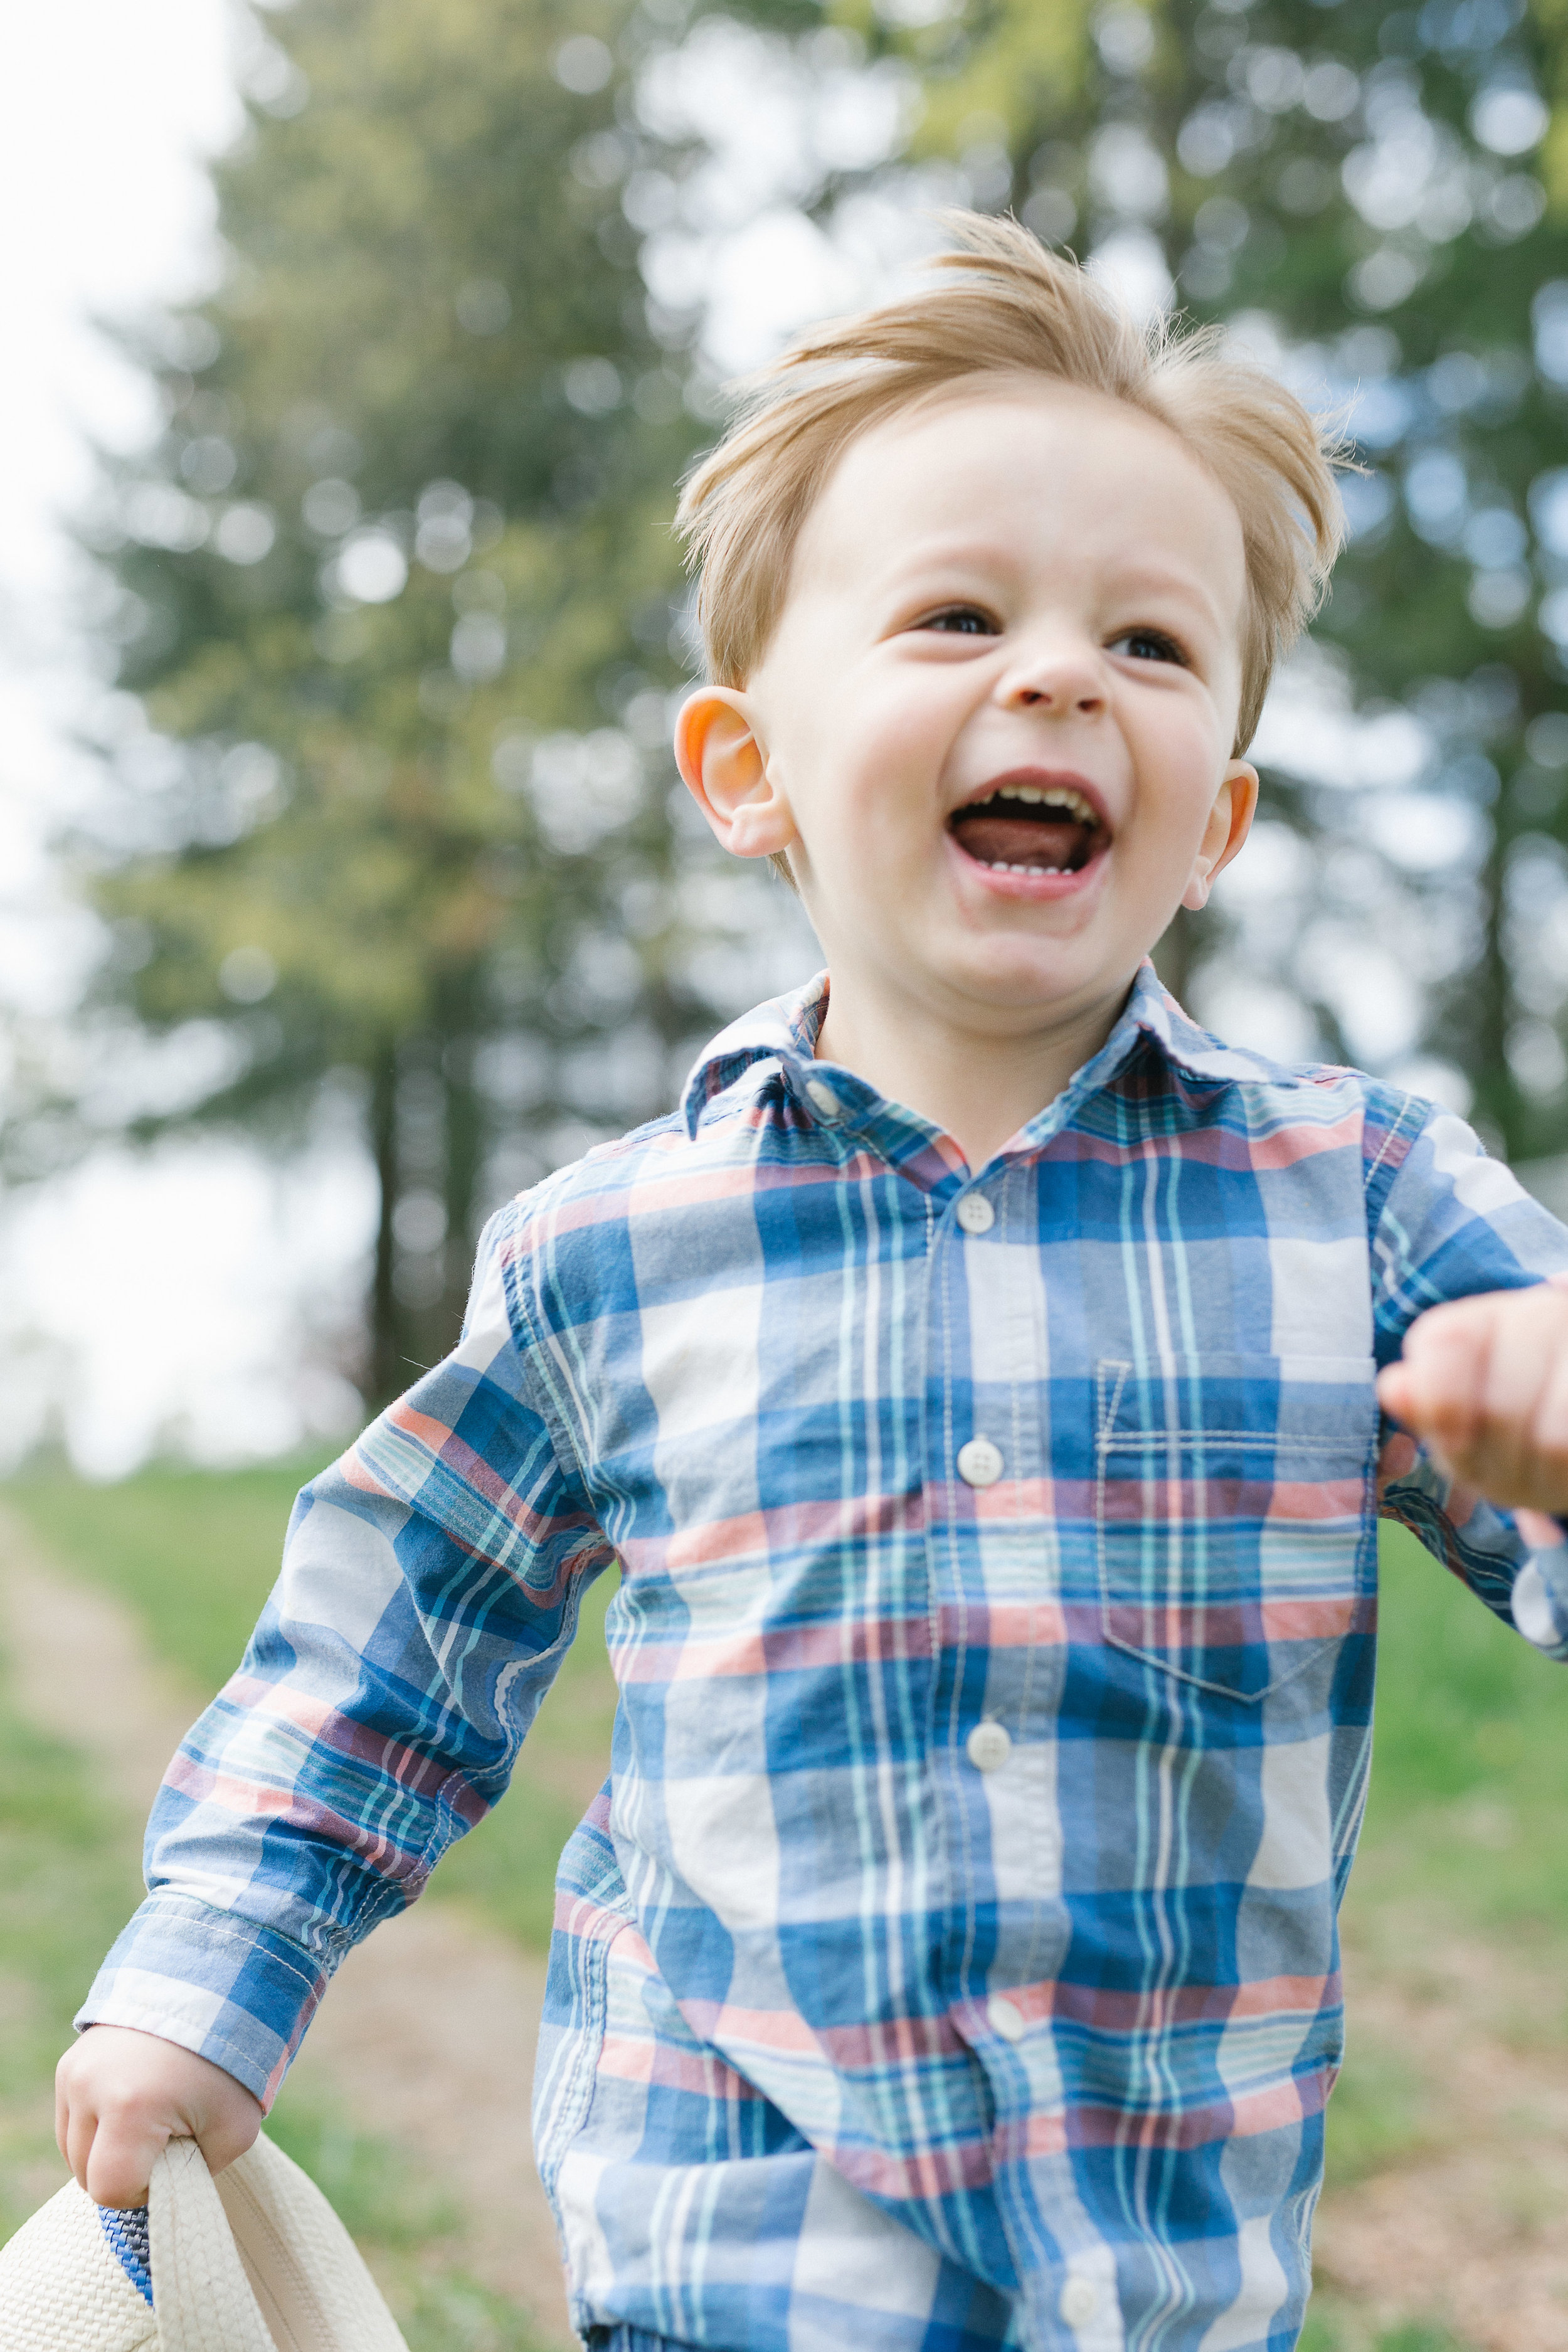 chelsea macor photography family photos lifestyle and outdoor seattle wa-3.jpg